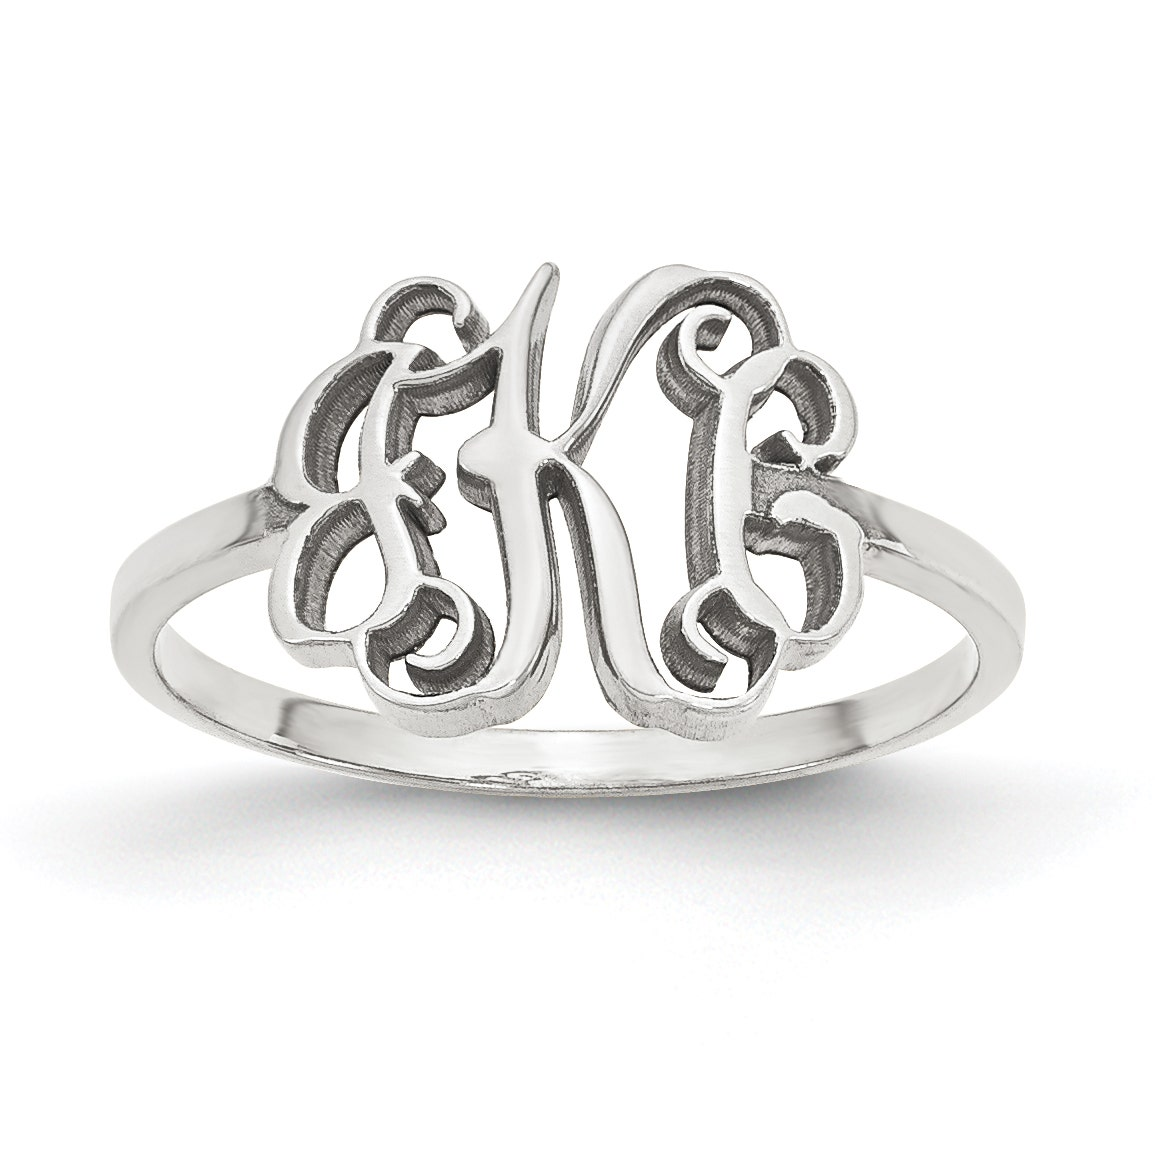 Jewelry Trends Love Script Promise Sterling Silver Ring Whole Sizes 6-9